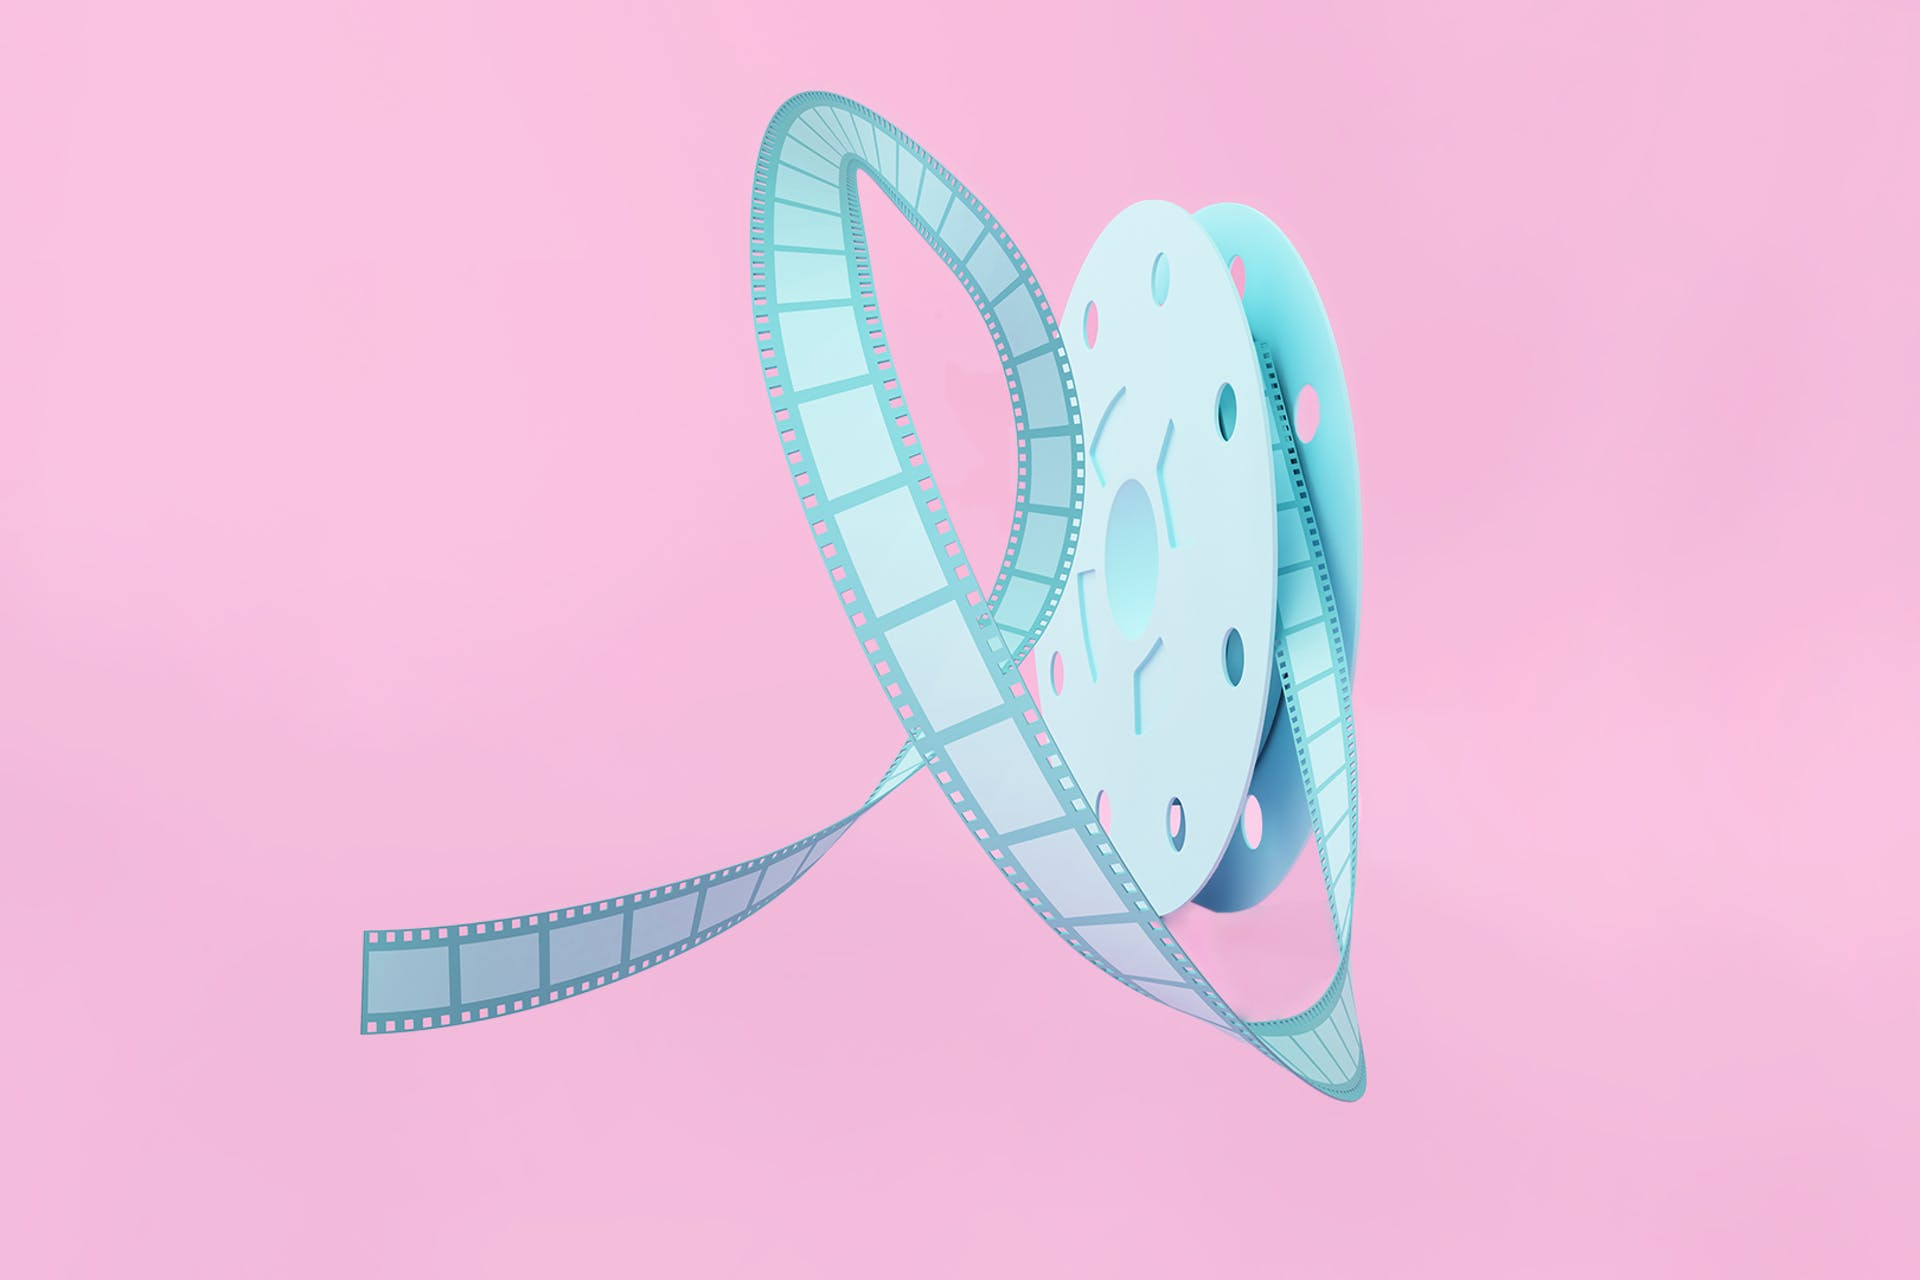 Image of a light blue old-fashioned film reel with film coming out, on a pink background. How to create and use Instagram Reels blog post